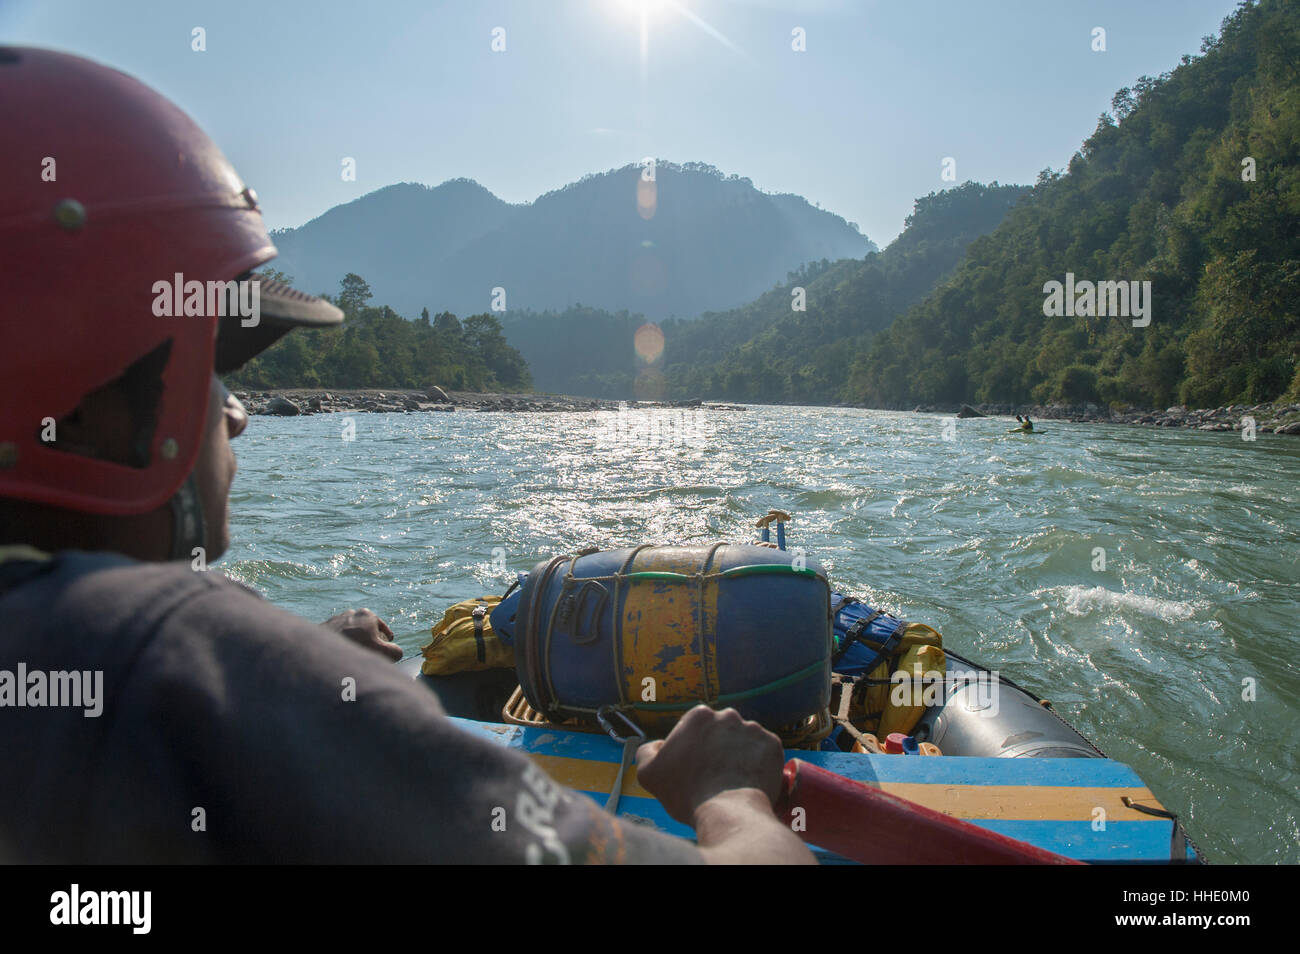 Rafting trip on the Trisuli River, Nepal Stock Photo